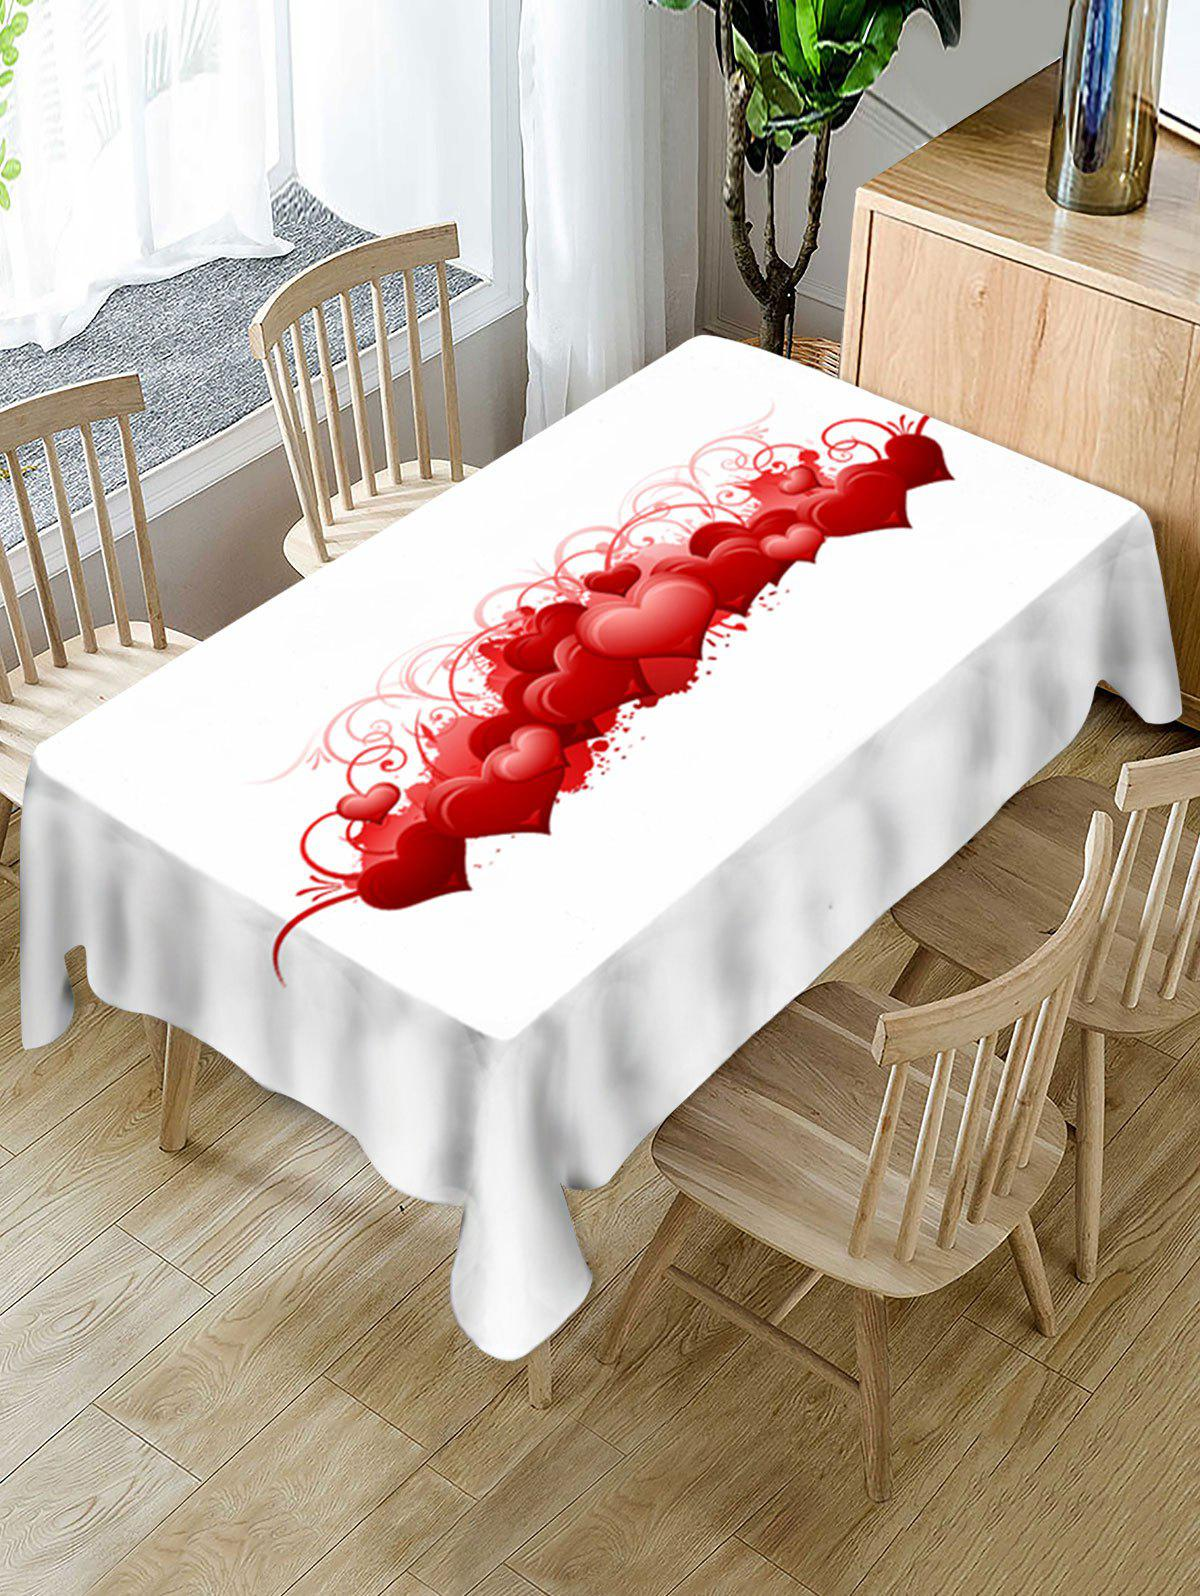 New Valentines Day Hearts Print Fabric Waterproof Tablecloth